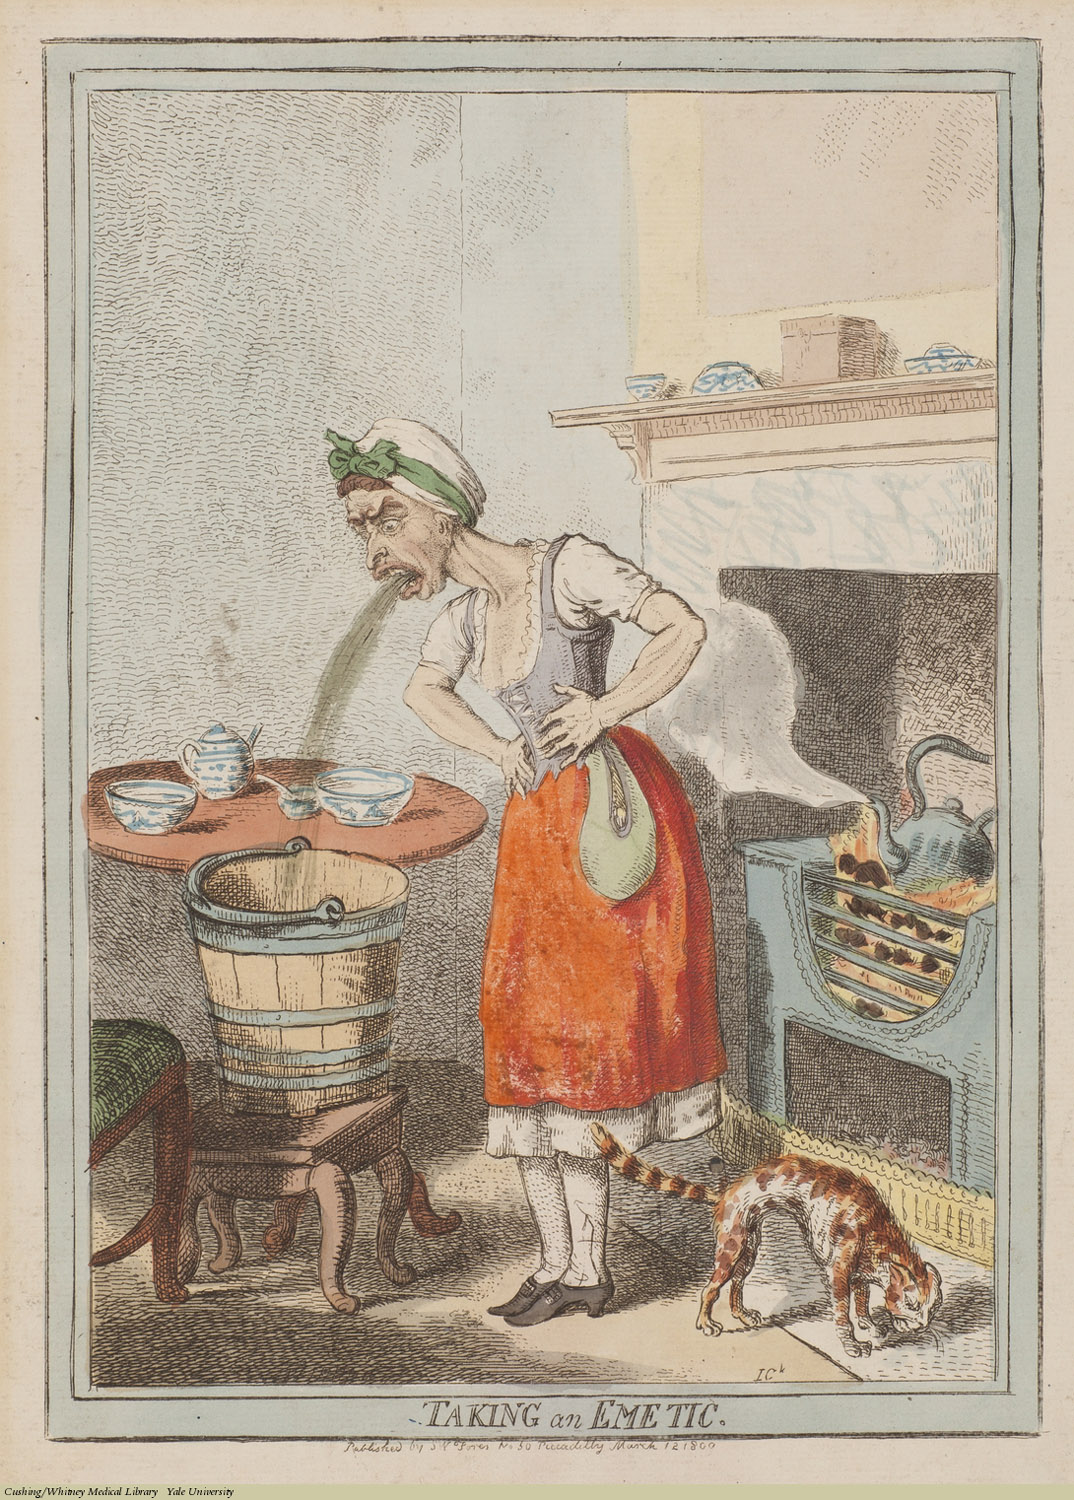 Taking An Emetic. Isaac Cruikshank, Laid, 1800. Subject: Emetics, Vomiting.